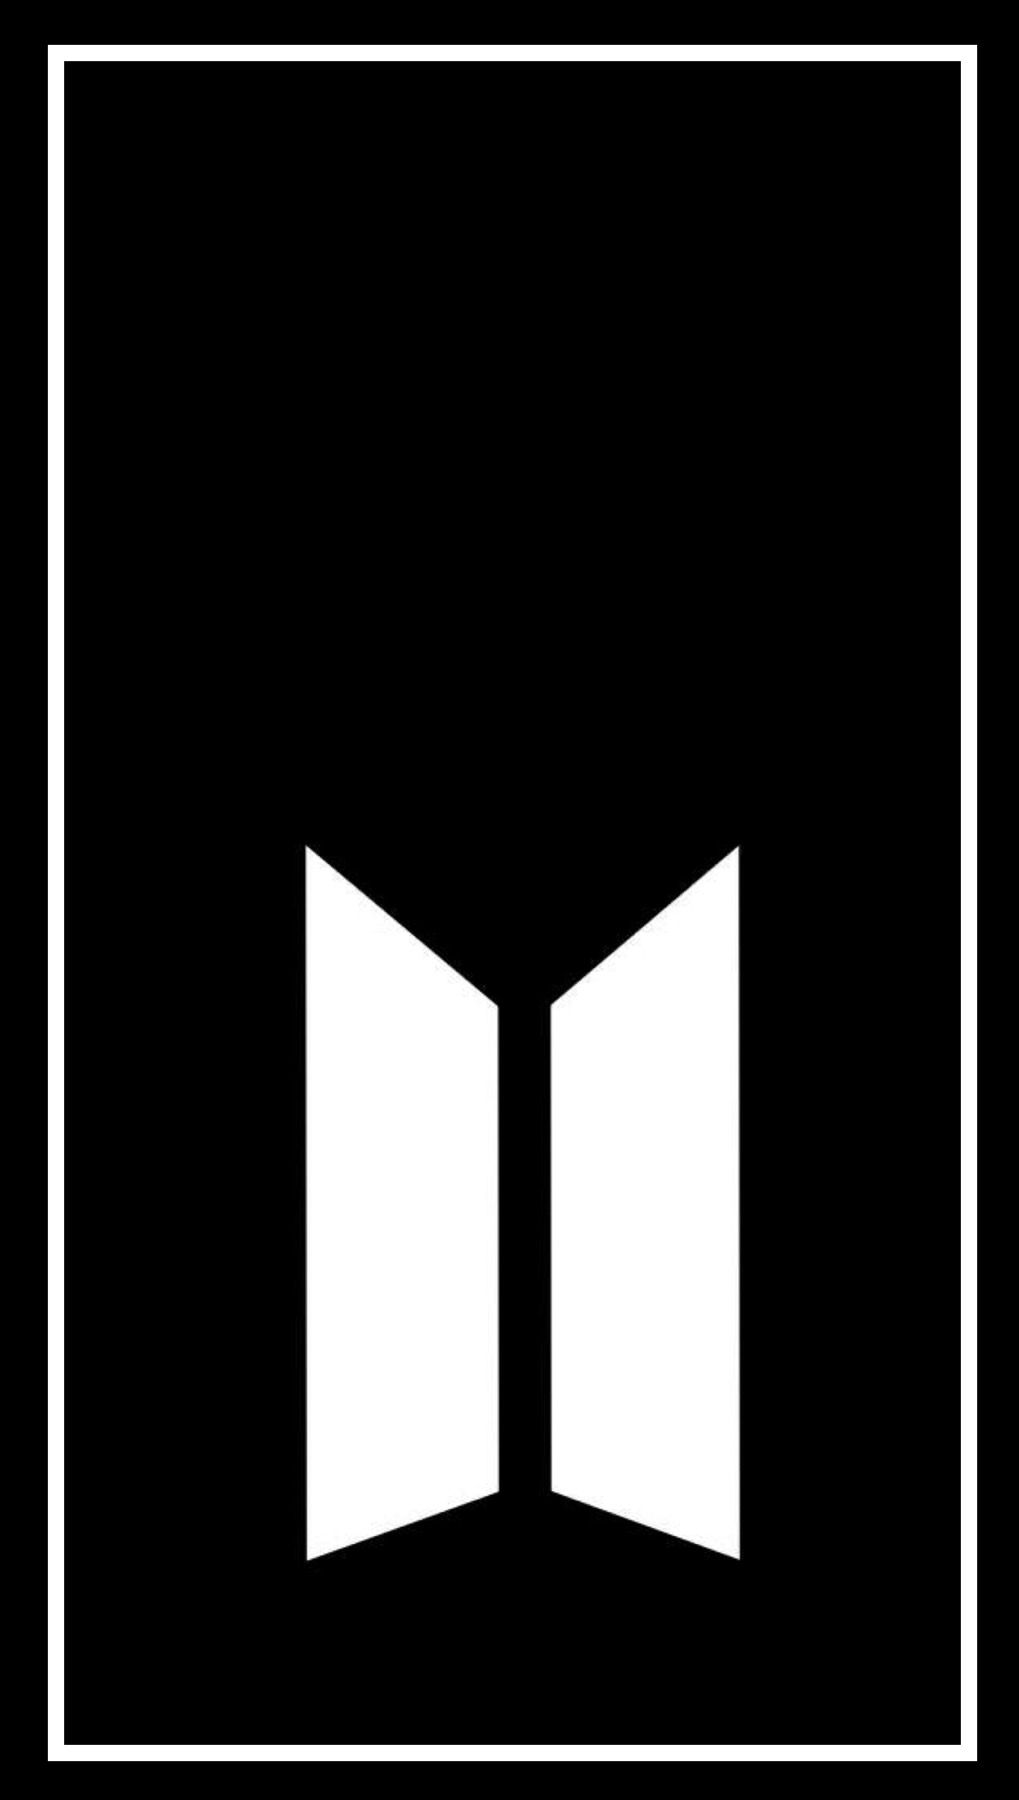 Bts Logo Wallpaper Bts In 2019 Pinterest Bts Wallpaper Bts